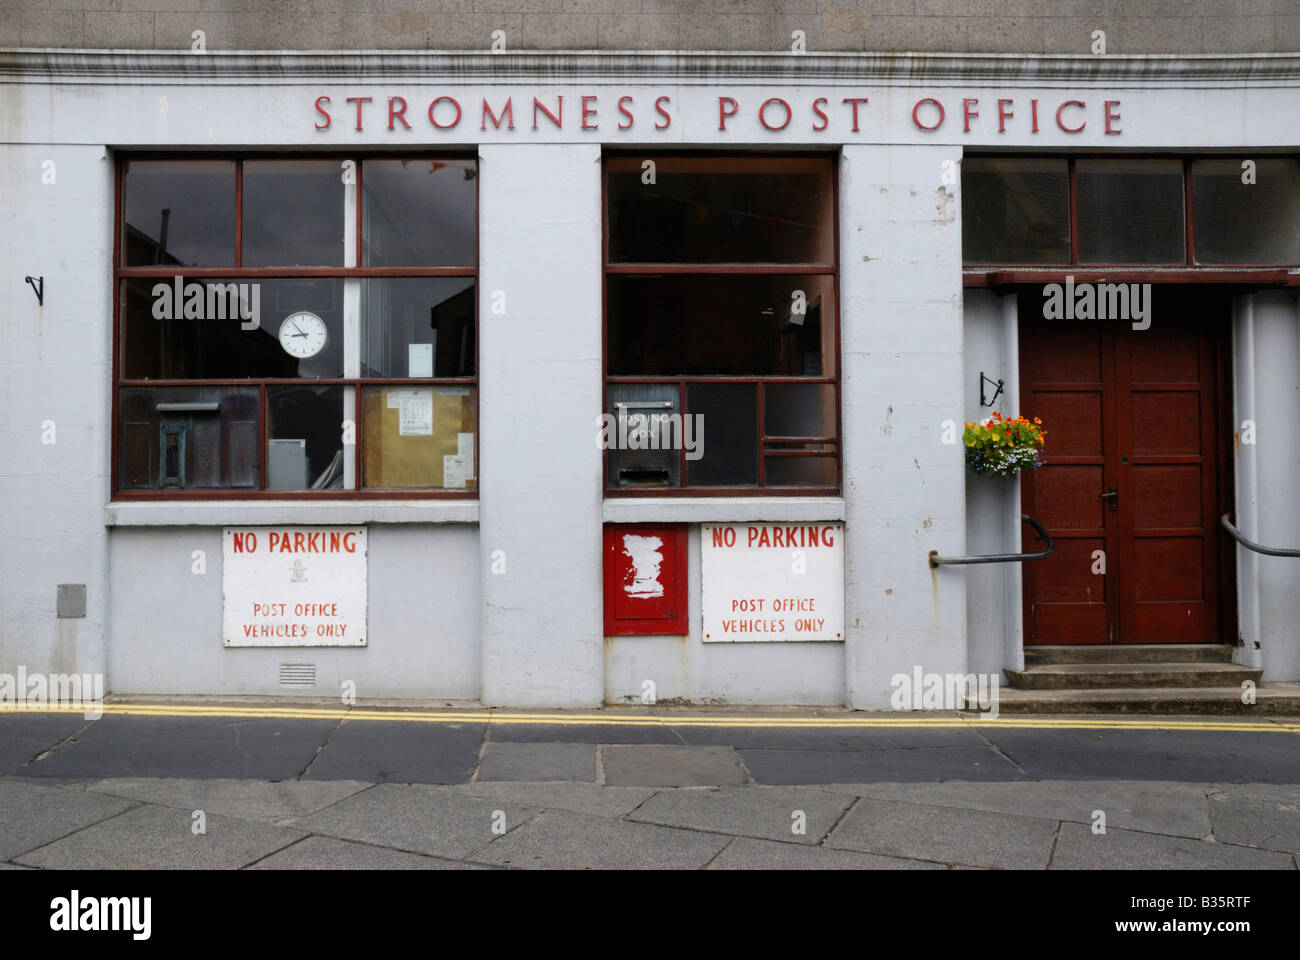 Stromness post office Orkney Scotland - Stock Image